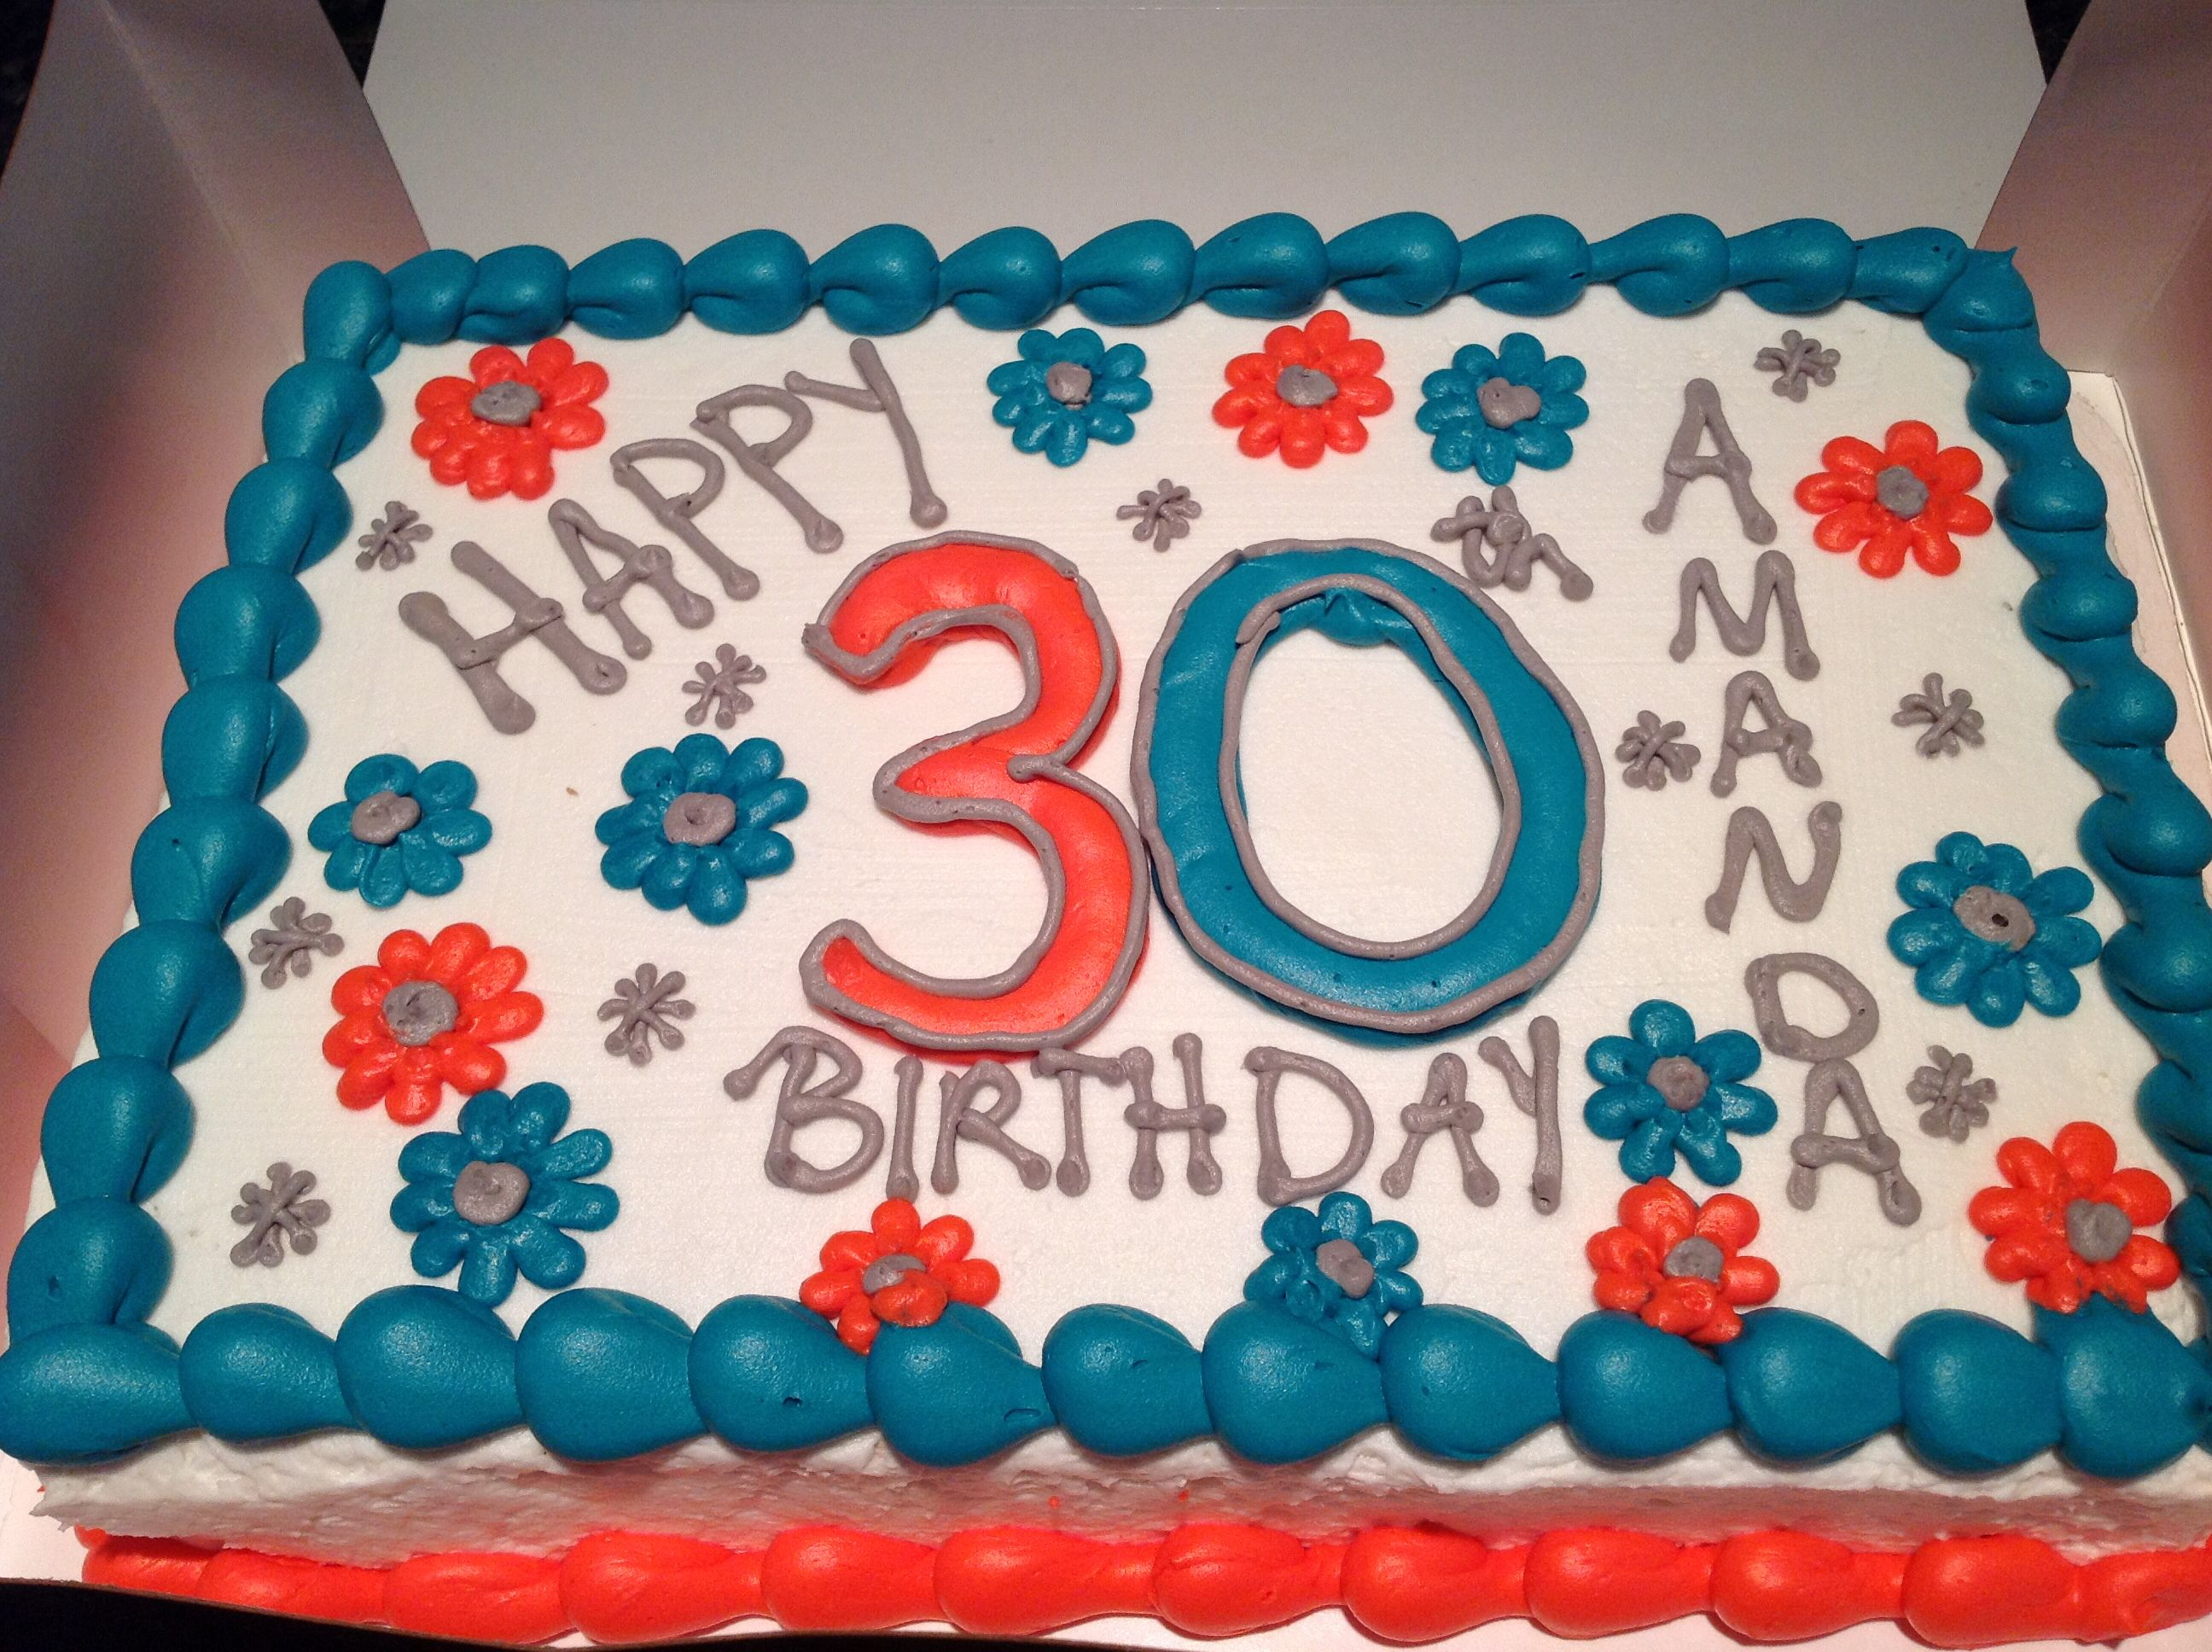 Stupendous 30Th Birthday Sheet Cake For Her Teal And Coral And Gray Made Funny Birthday Cards Online Inifodamsfinfo